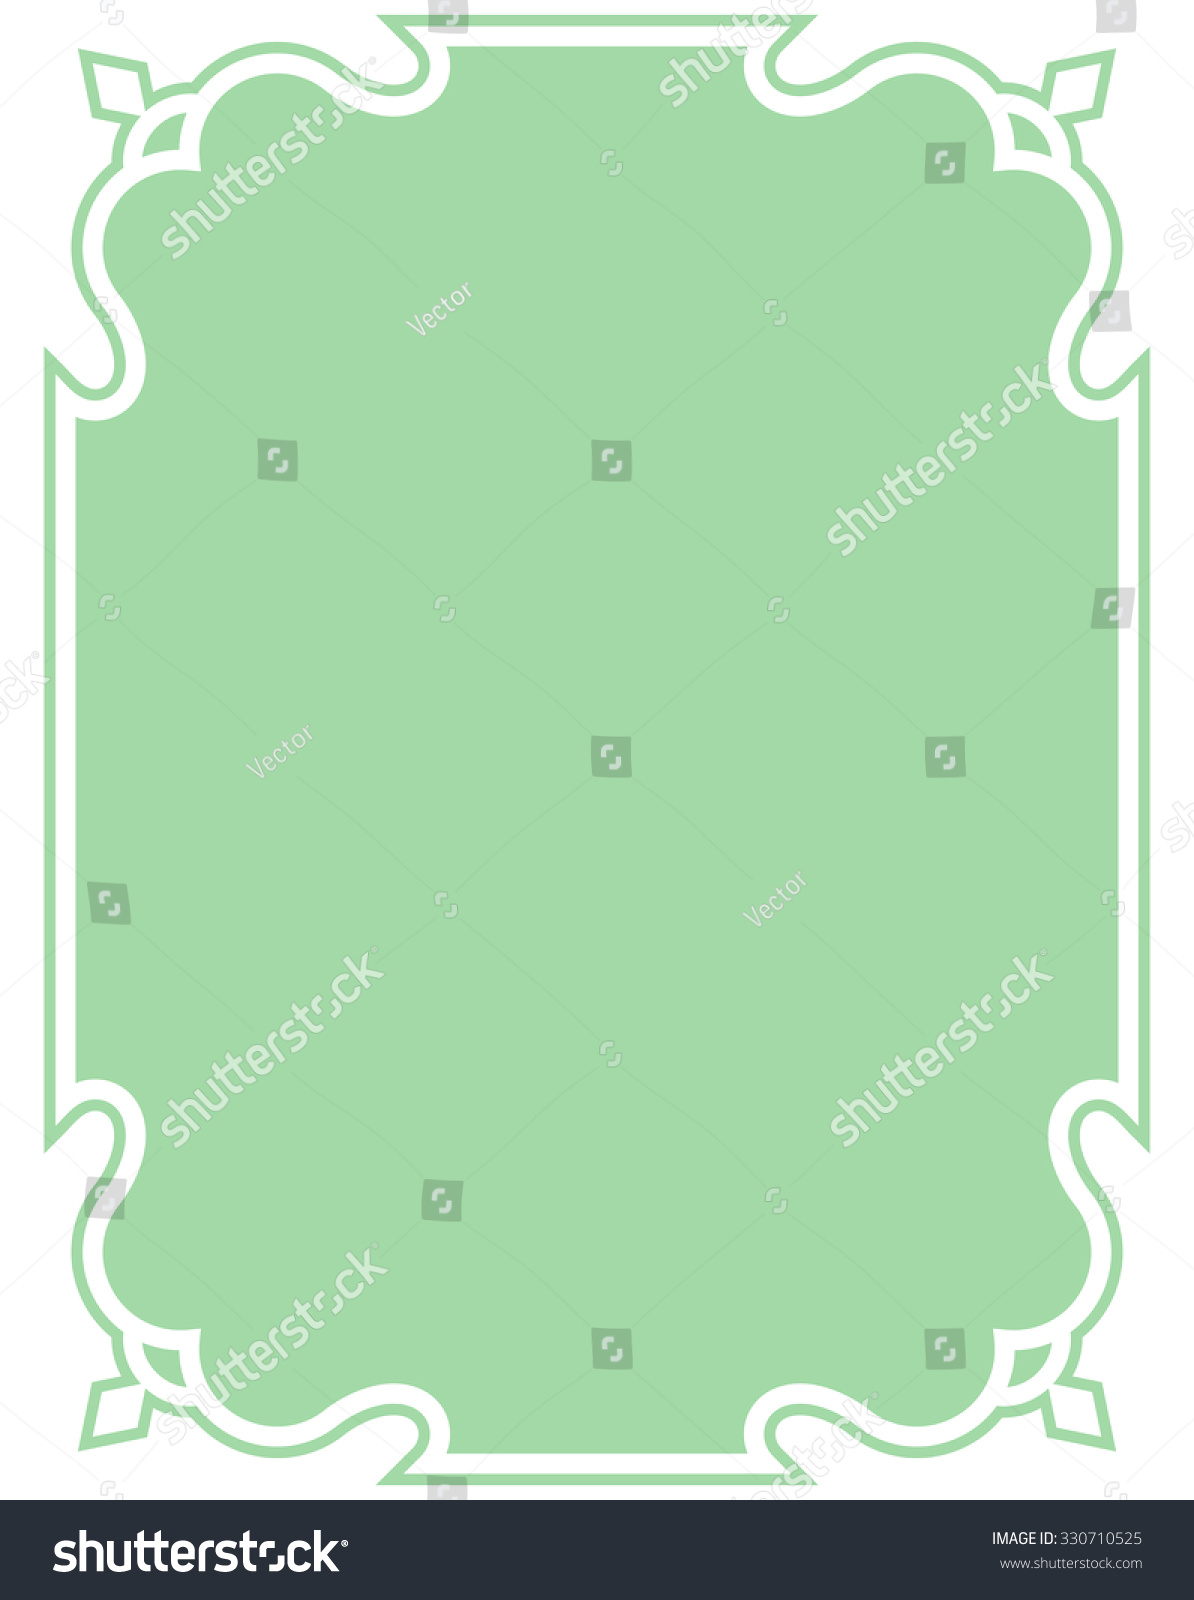 green border frame deco vector art stock vector 330710525 shutterstock. Black Bedroom Furniture Sets. Home Design Ideas